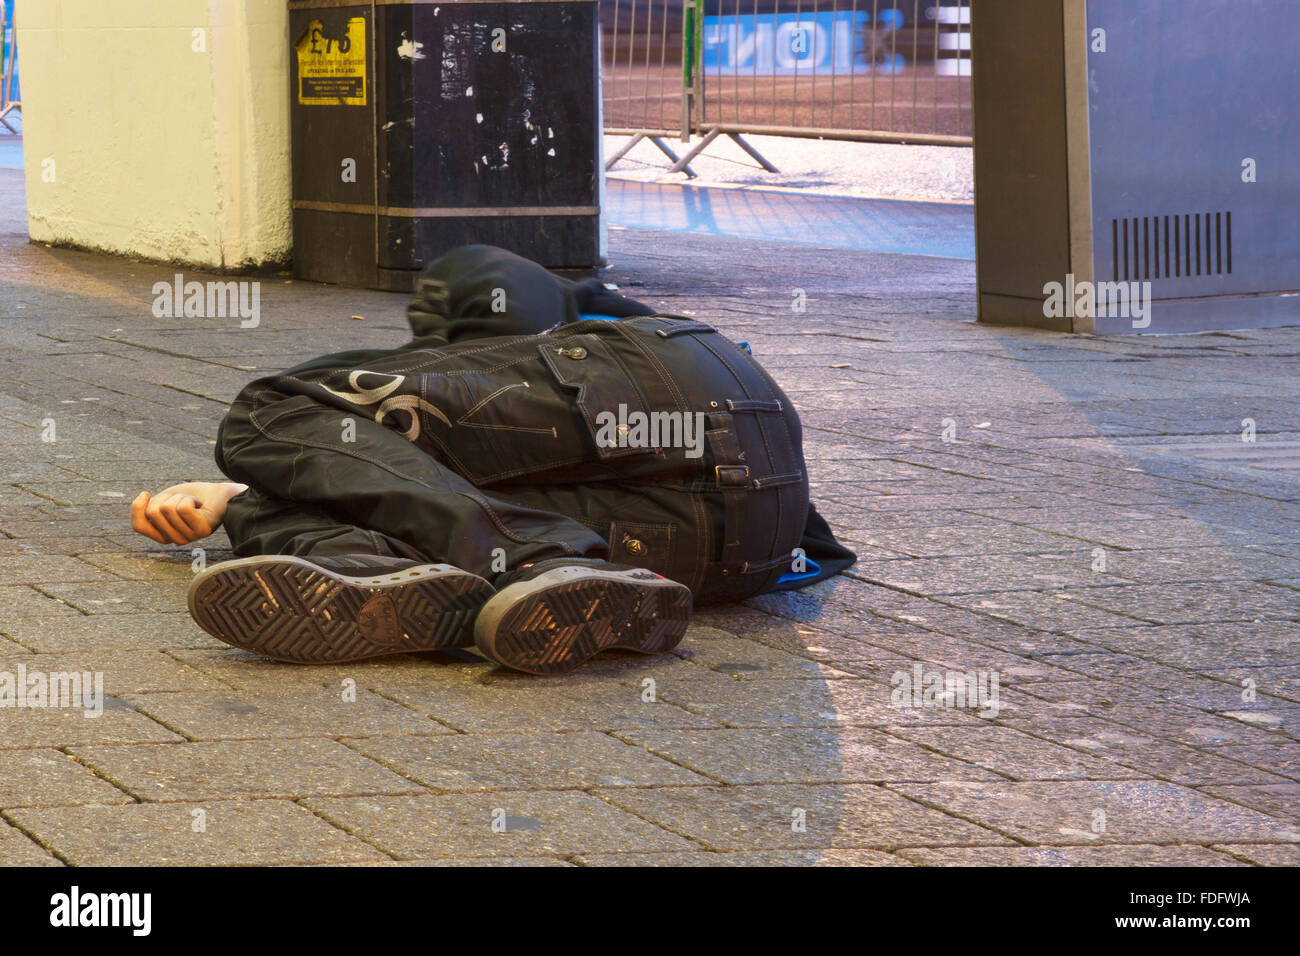 Homeless man sleeps on pavement in Sheffield - Stock Image